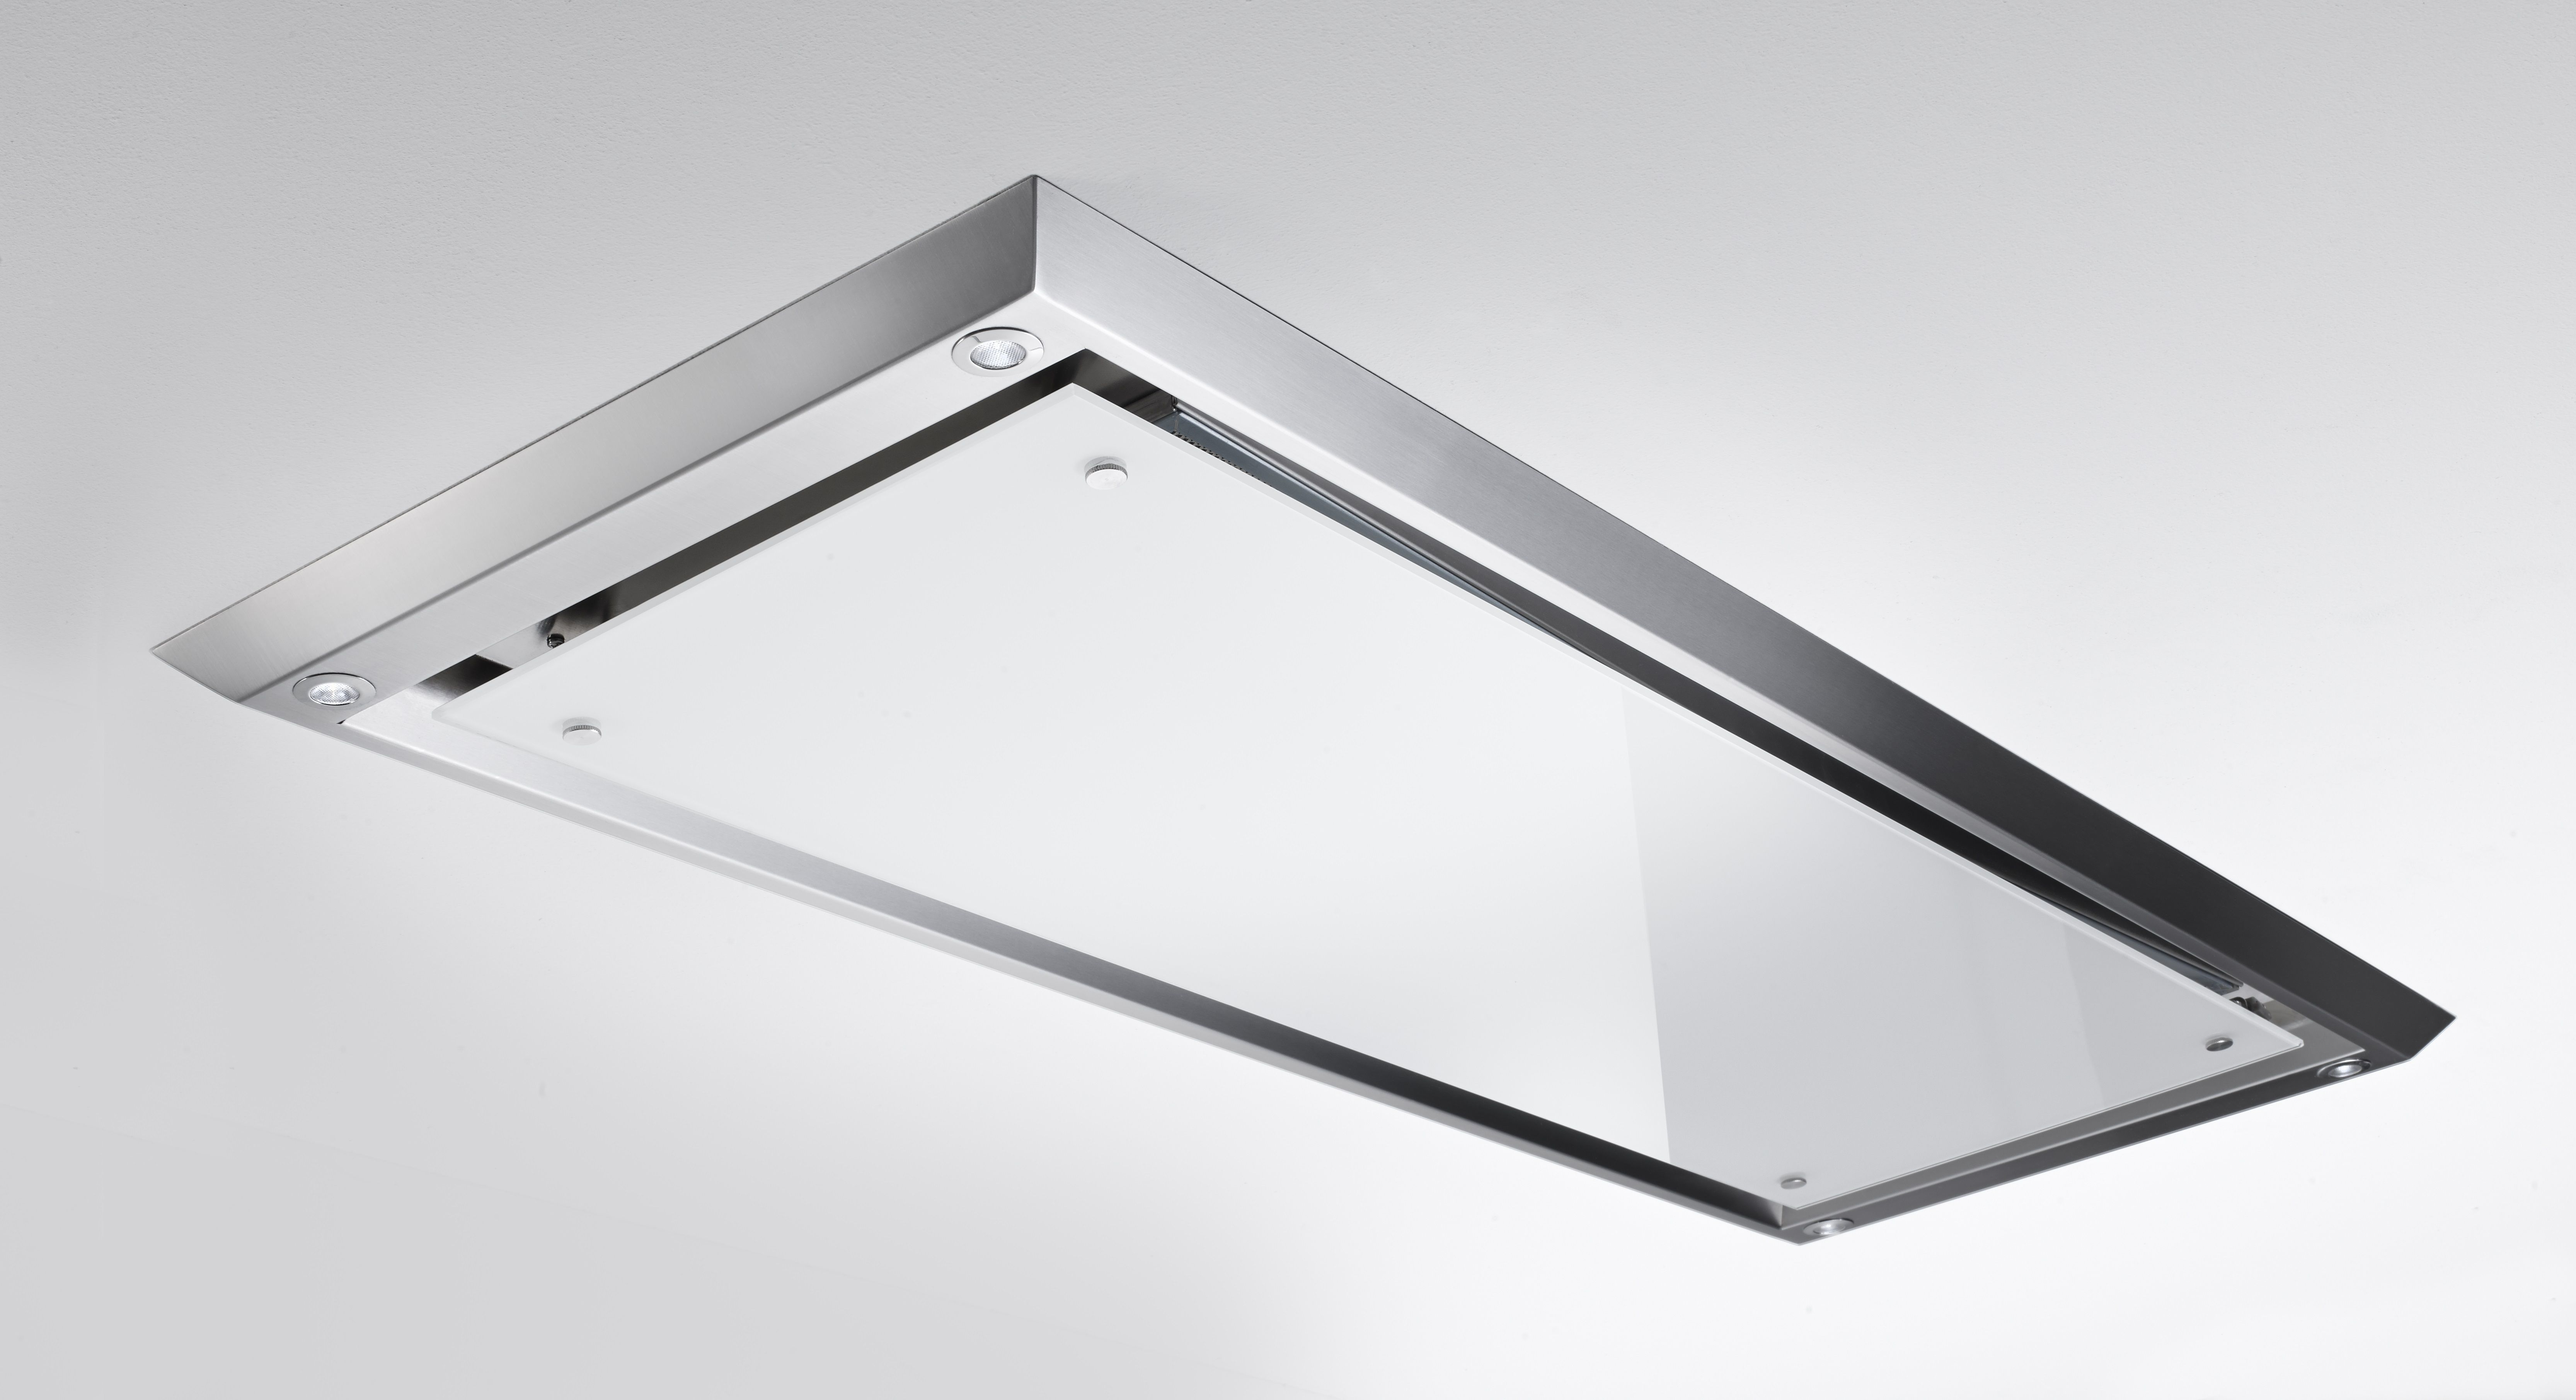 Stunning Slimline Ceiling Hood Ingenious Way Motor Fits In Between Most Standard House Joists With Option T Extractor Hood Ceiling Hood Stainless Steel Frame